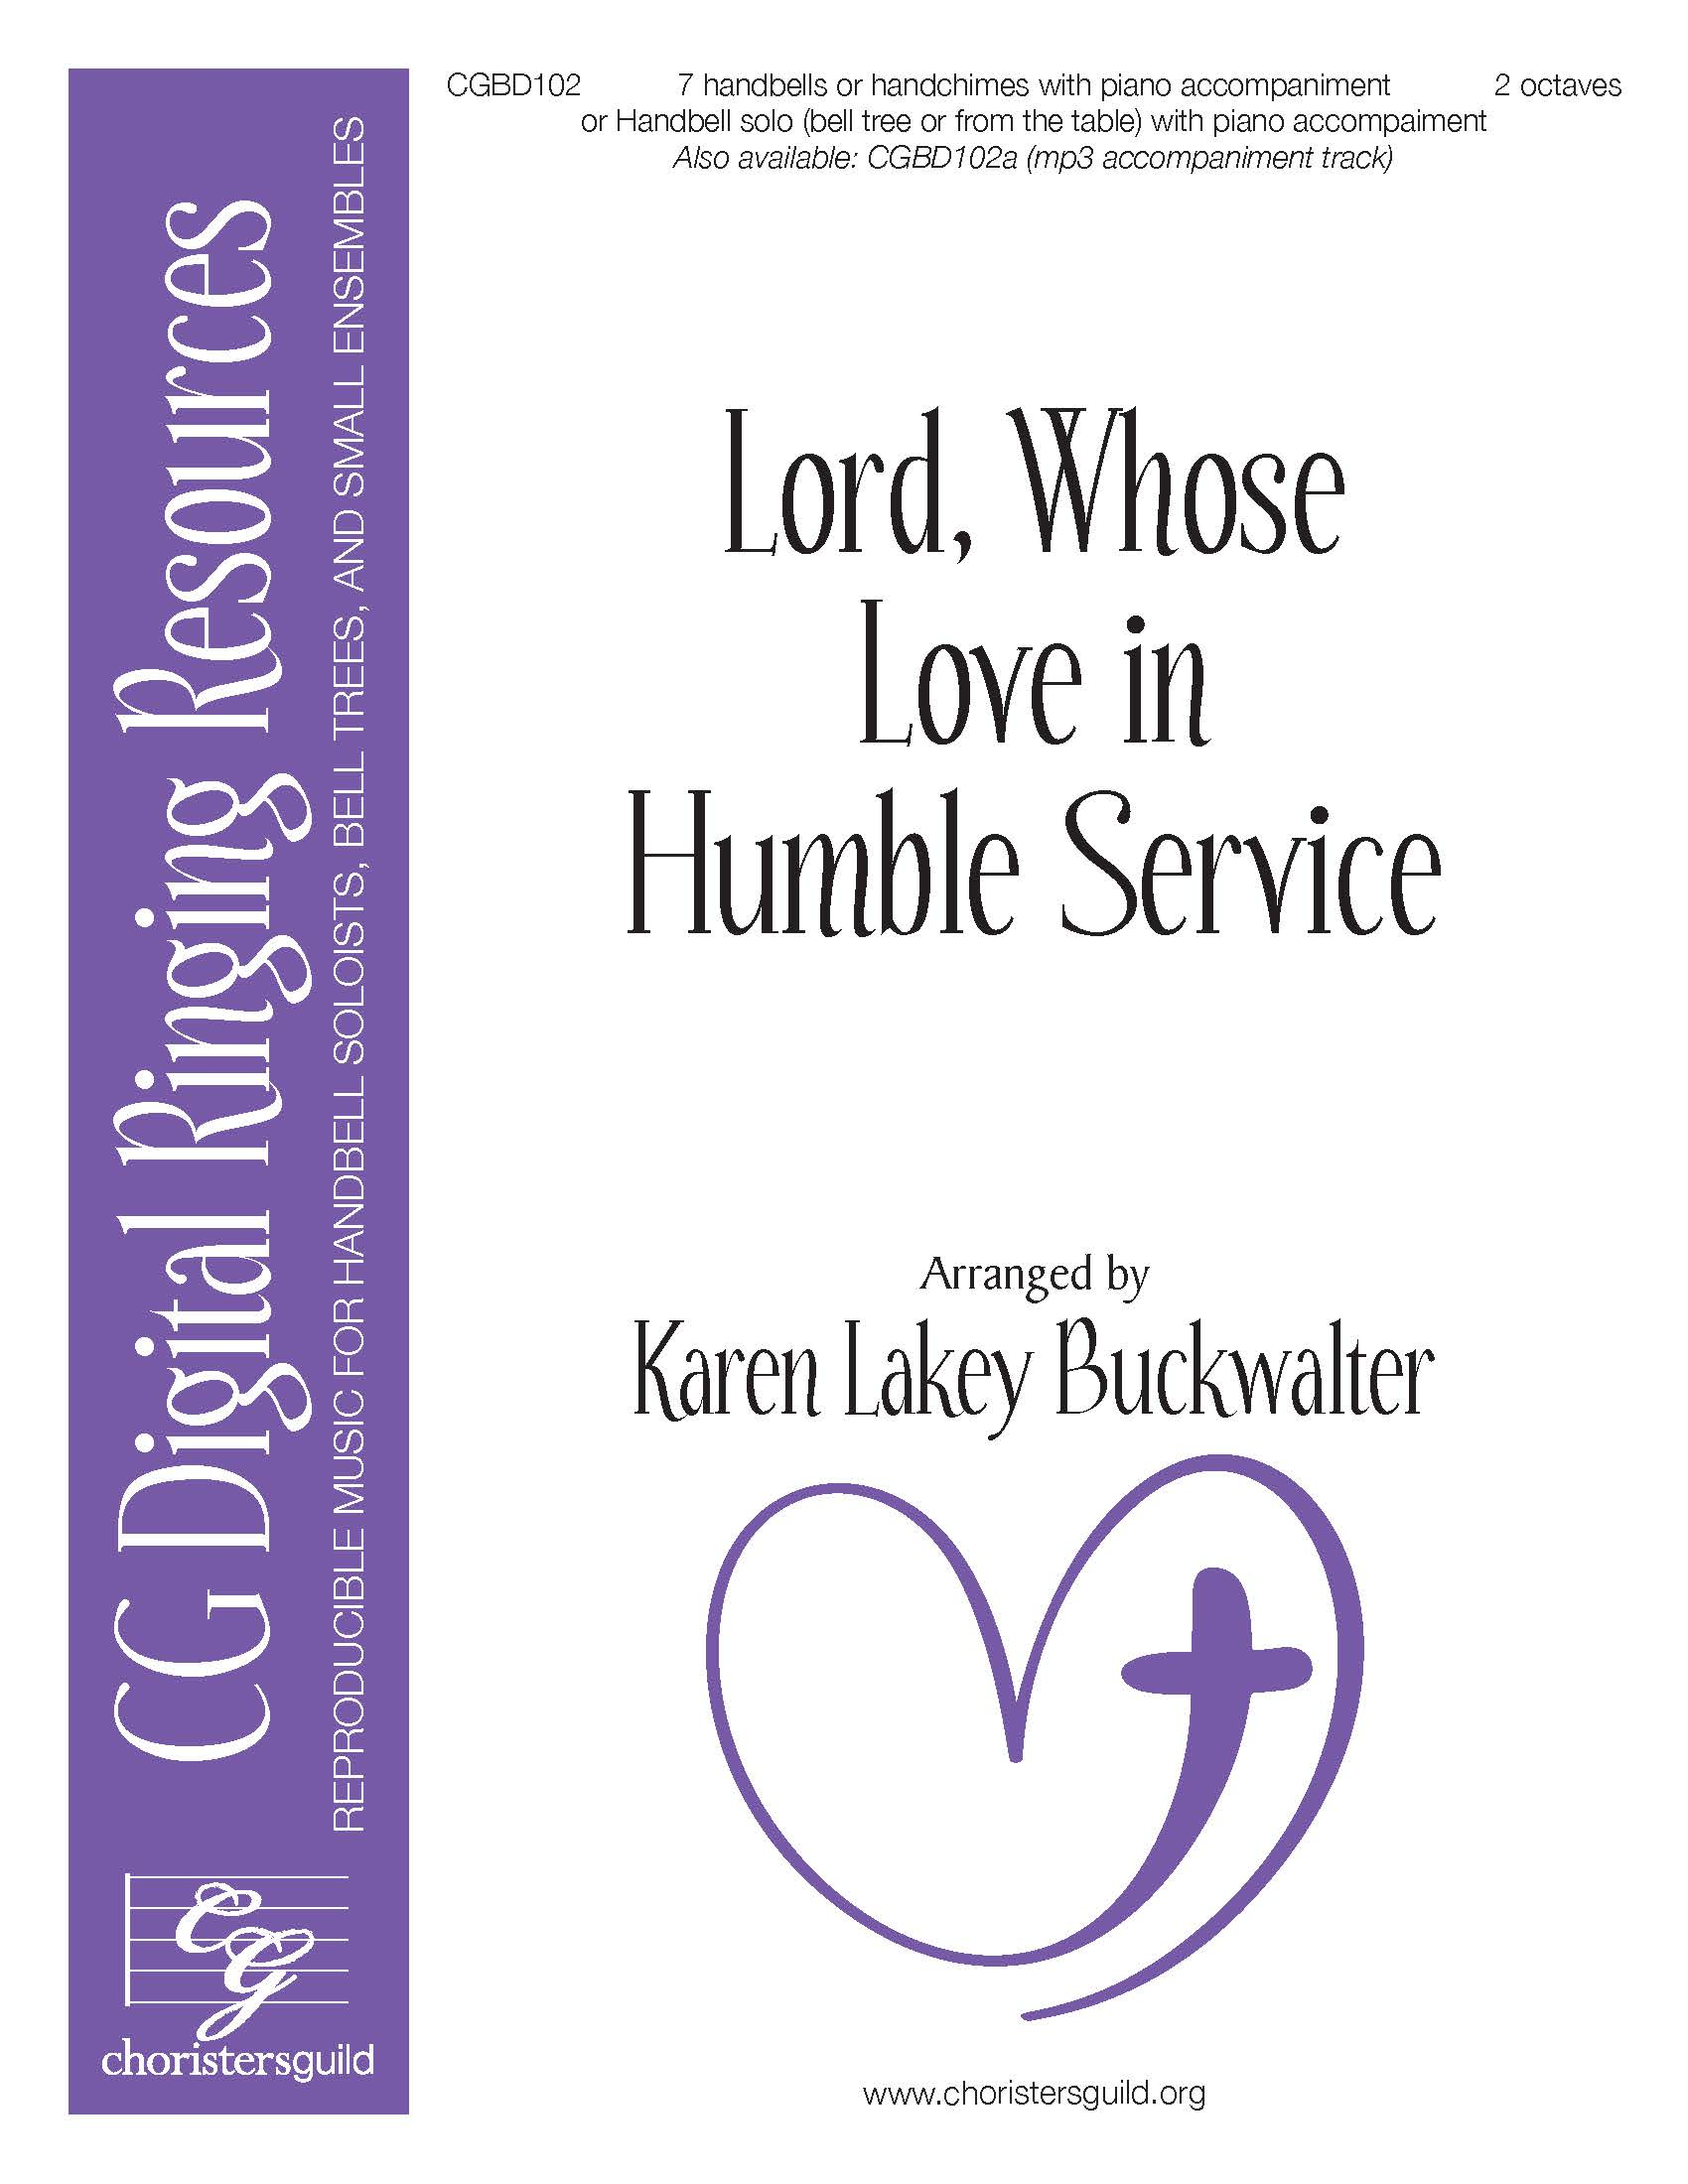 Lord, Whose Love in Humble Service - 7 bells (reproducible)